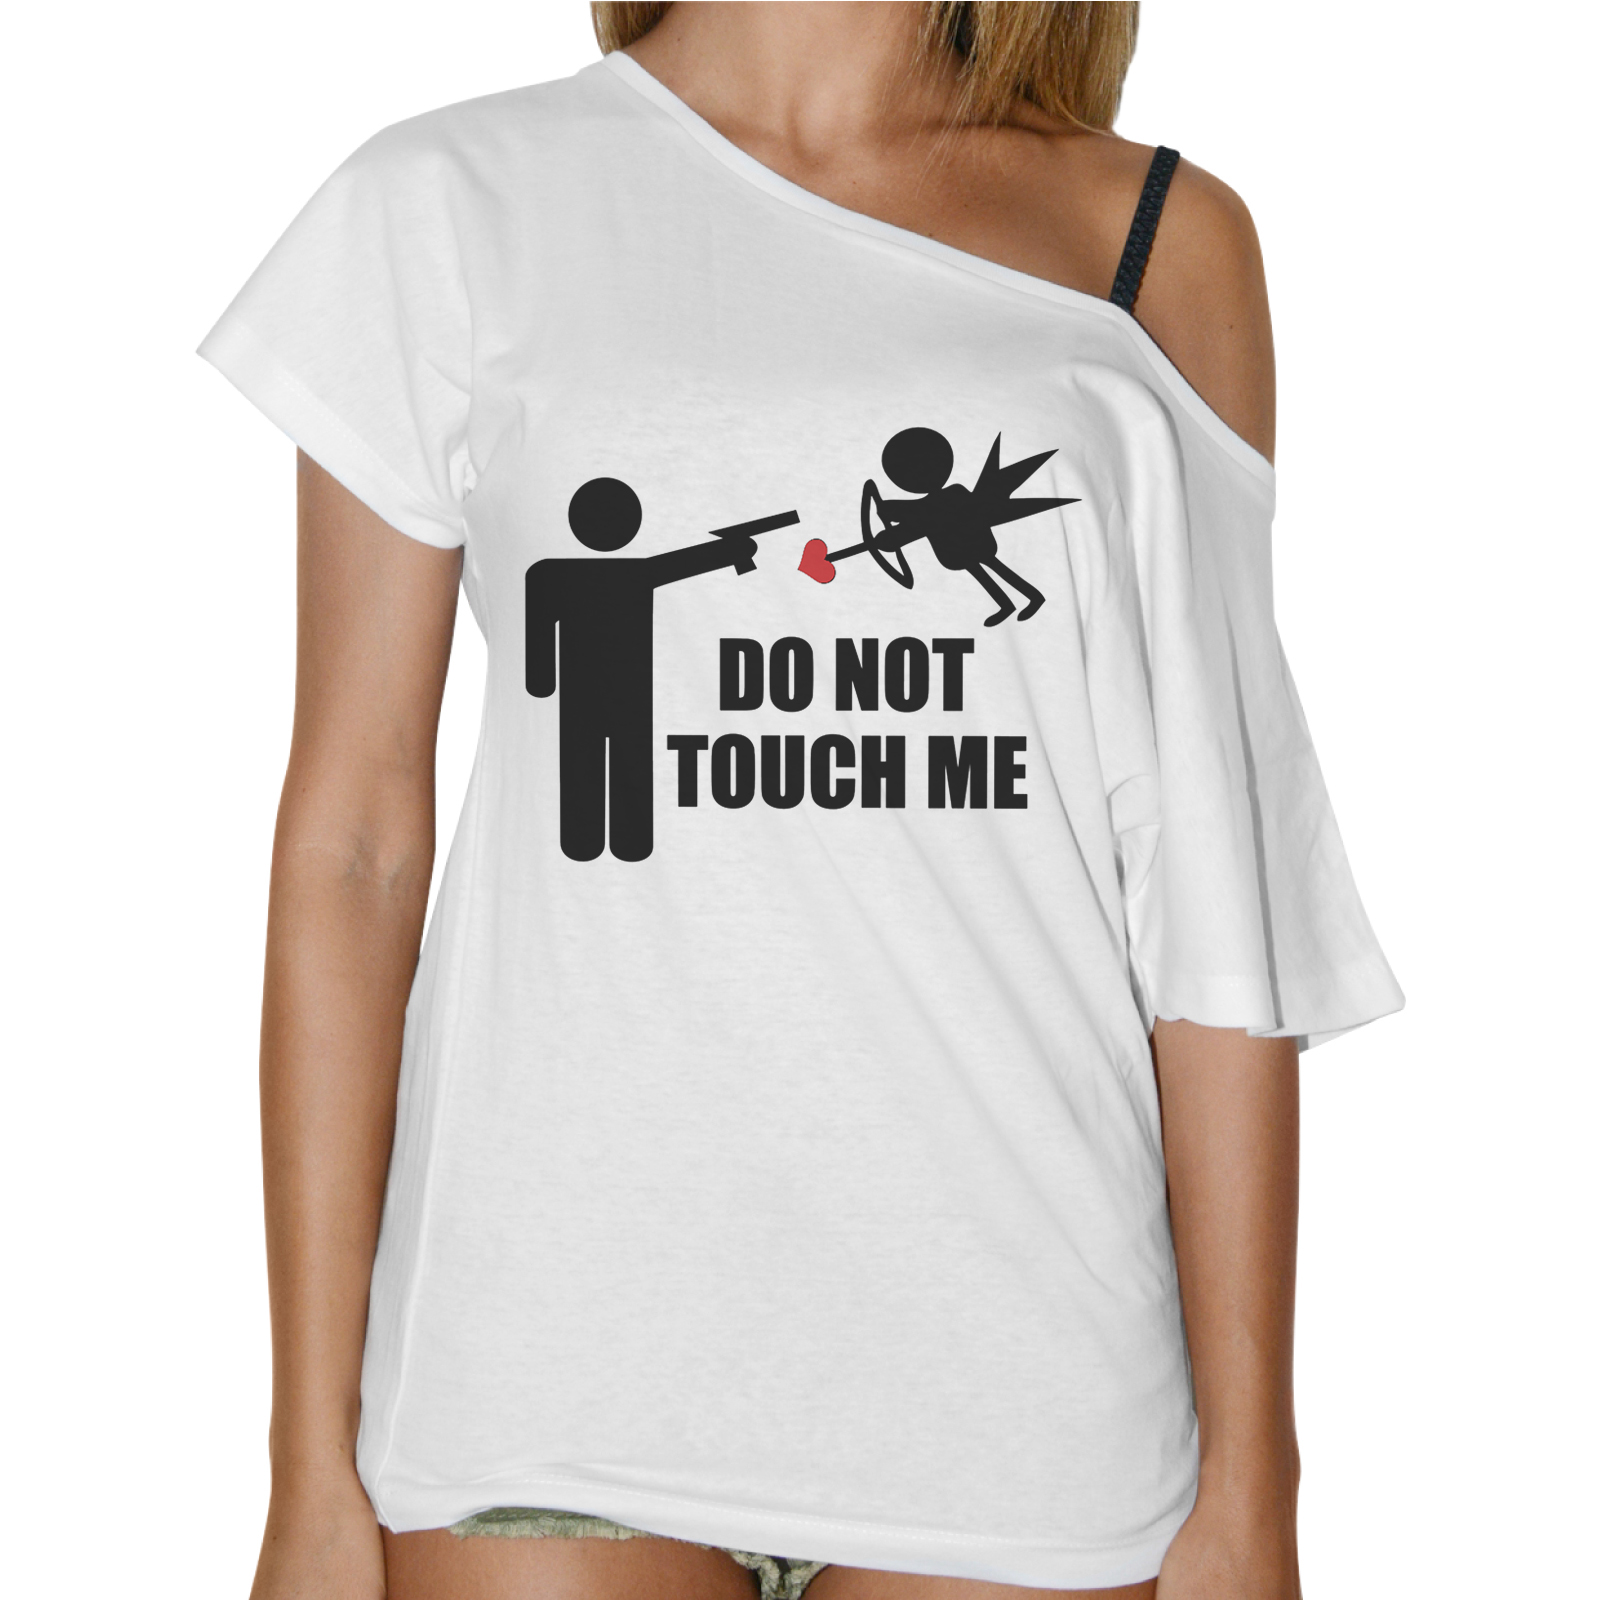 T-Shirt Donna Collo Barca DO NOT TOUCH ME 1